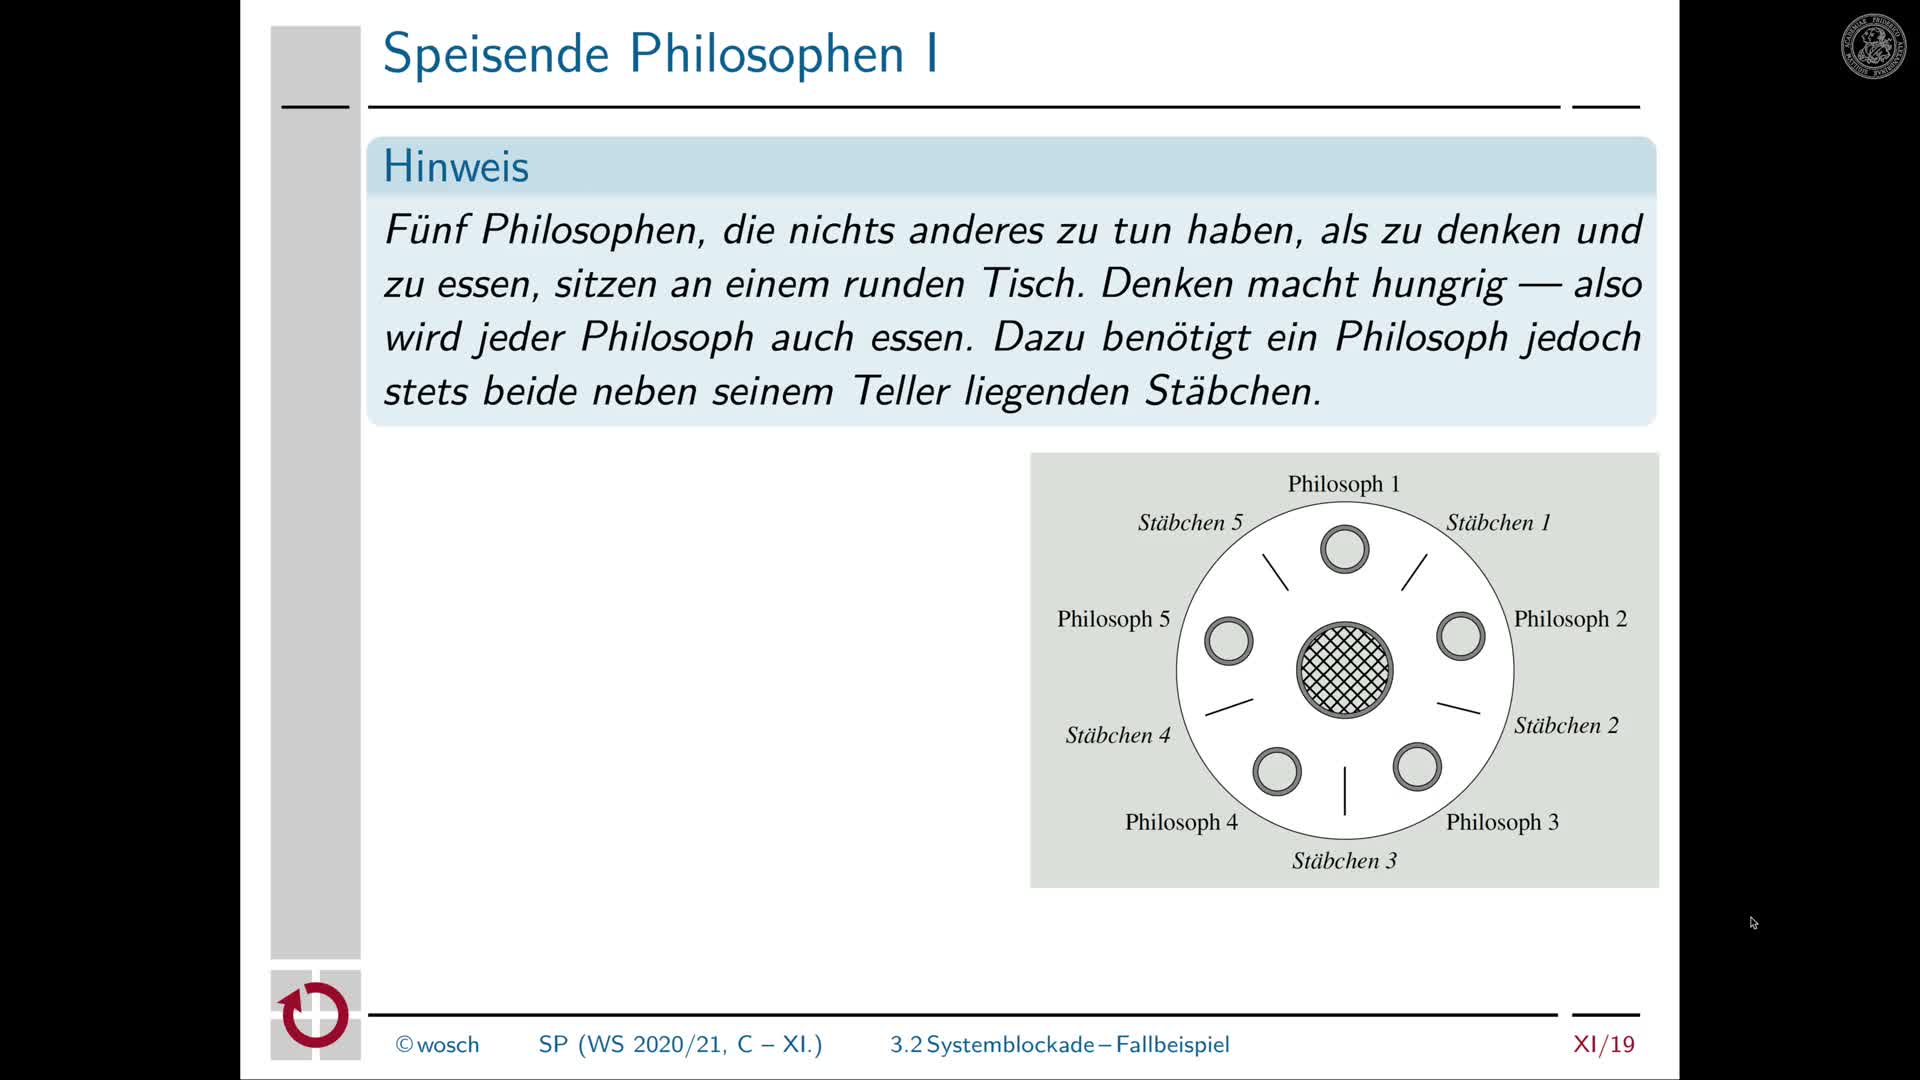 11.6: Speisende Philosophen preview image